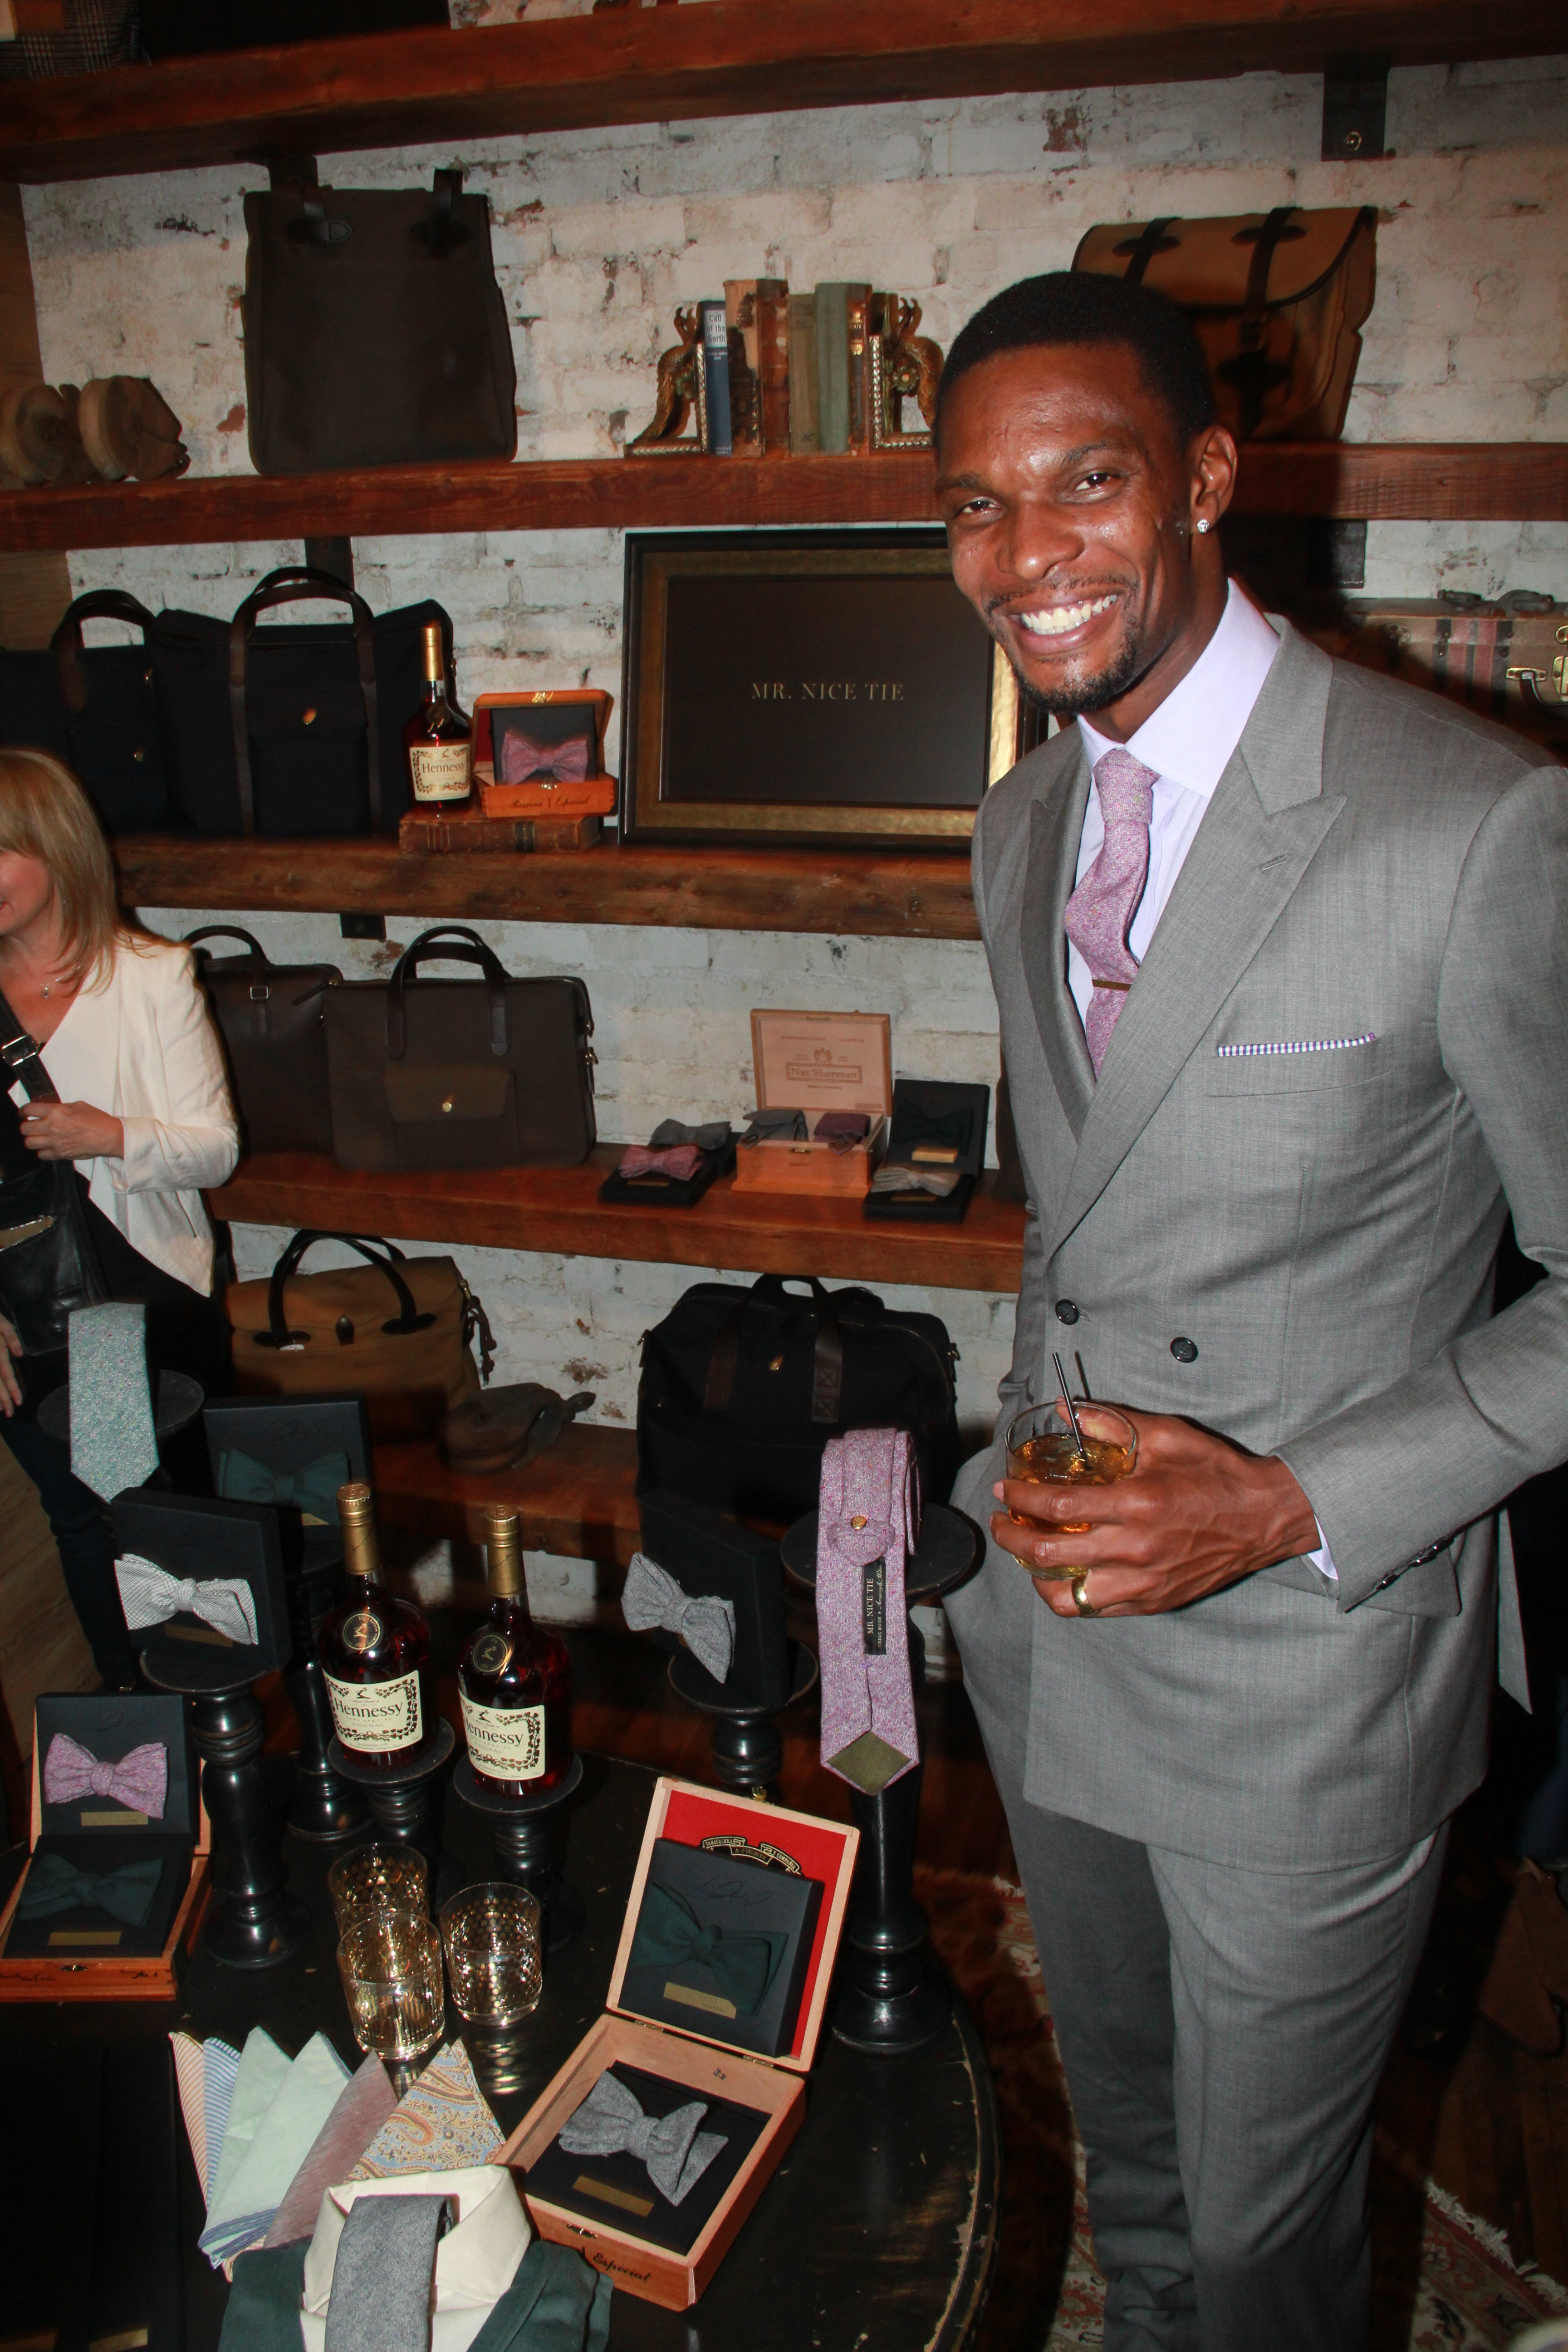 Chris-Bosh-Mr-Nice-tie-new-york-fashion-week-debut-armstrong-and-wilson-14